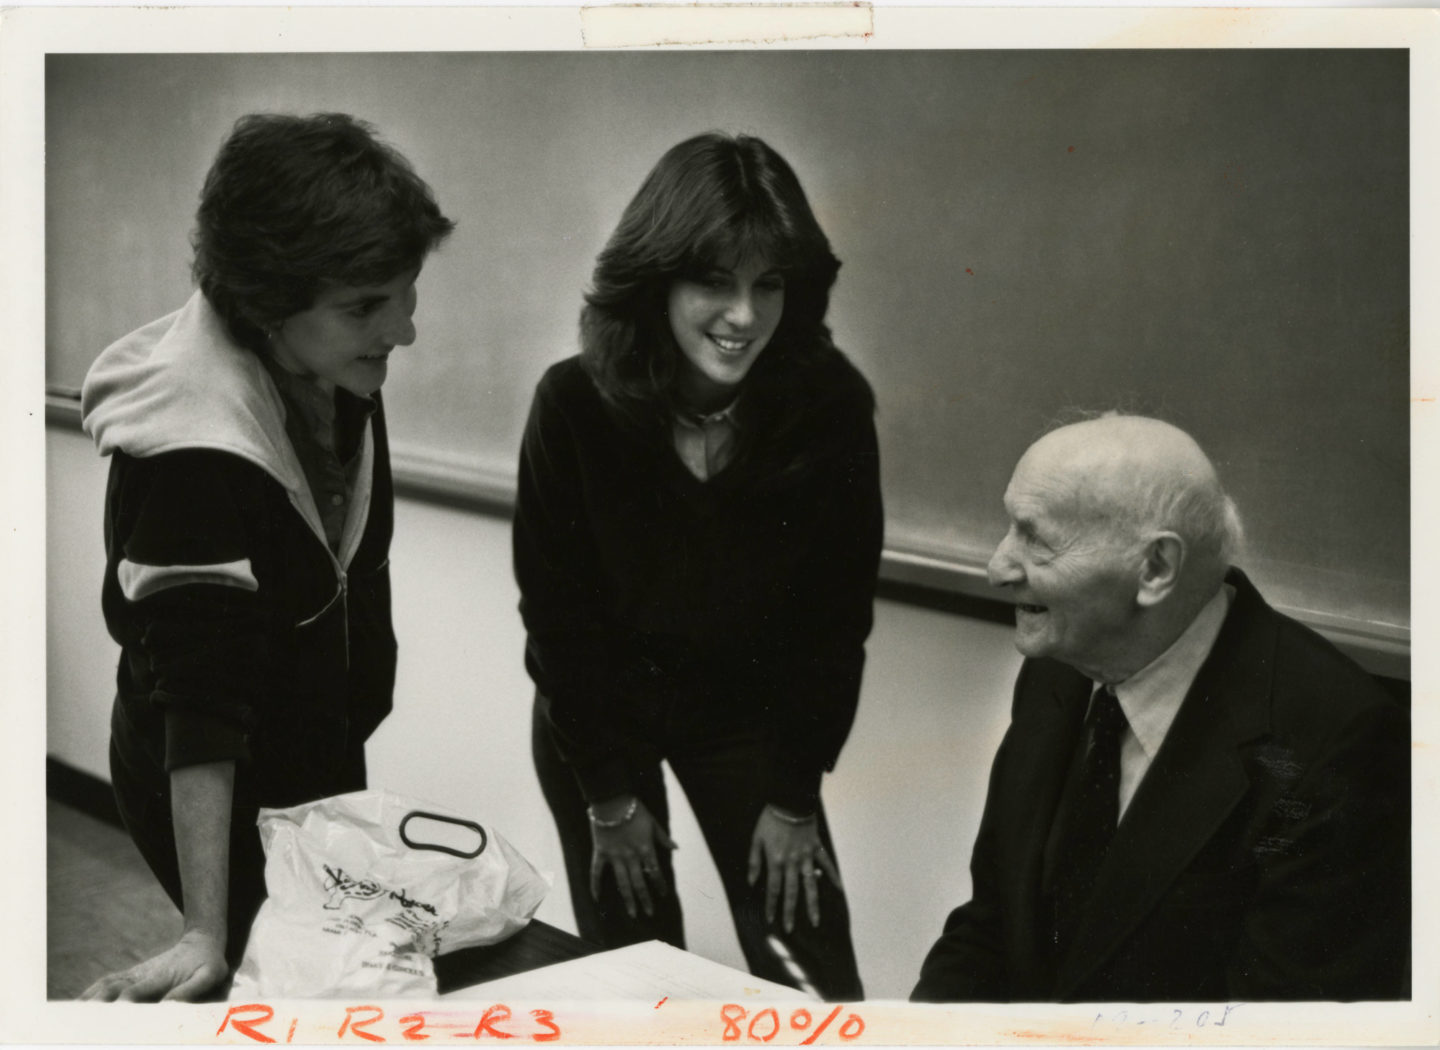 "<p>Isaac Bashevis Singer and students (<a href=""http://merrick.library.miami.edu/cdm/singleitem/collection/umpeople/id/94/rec/1"">University Archives, University of Miami&nbsp;Libraries</a>)</p>"